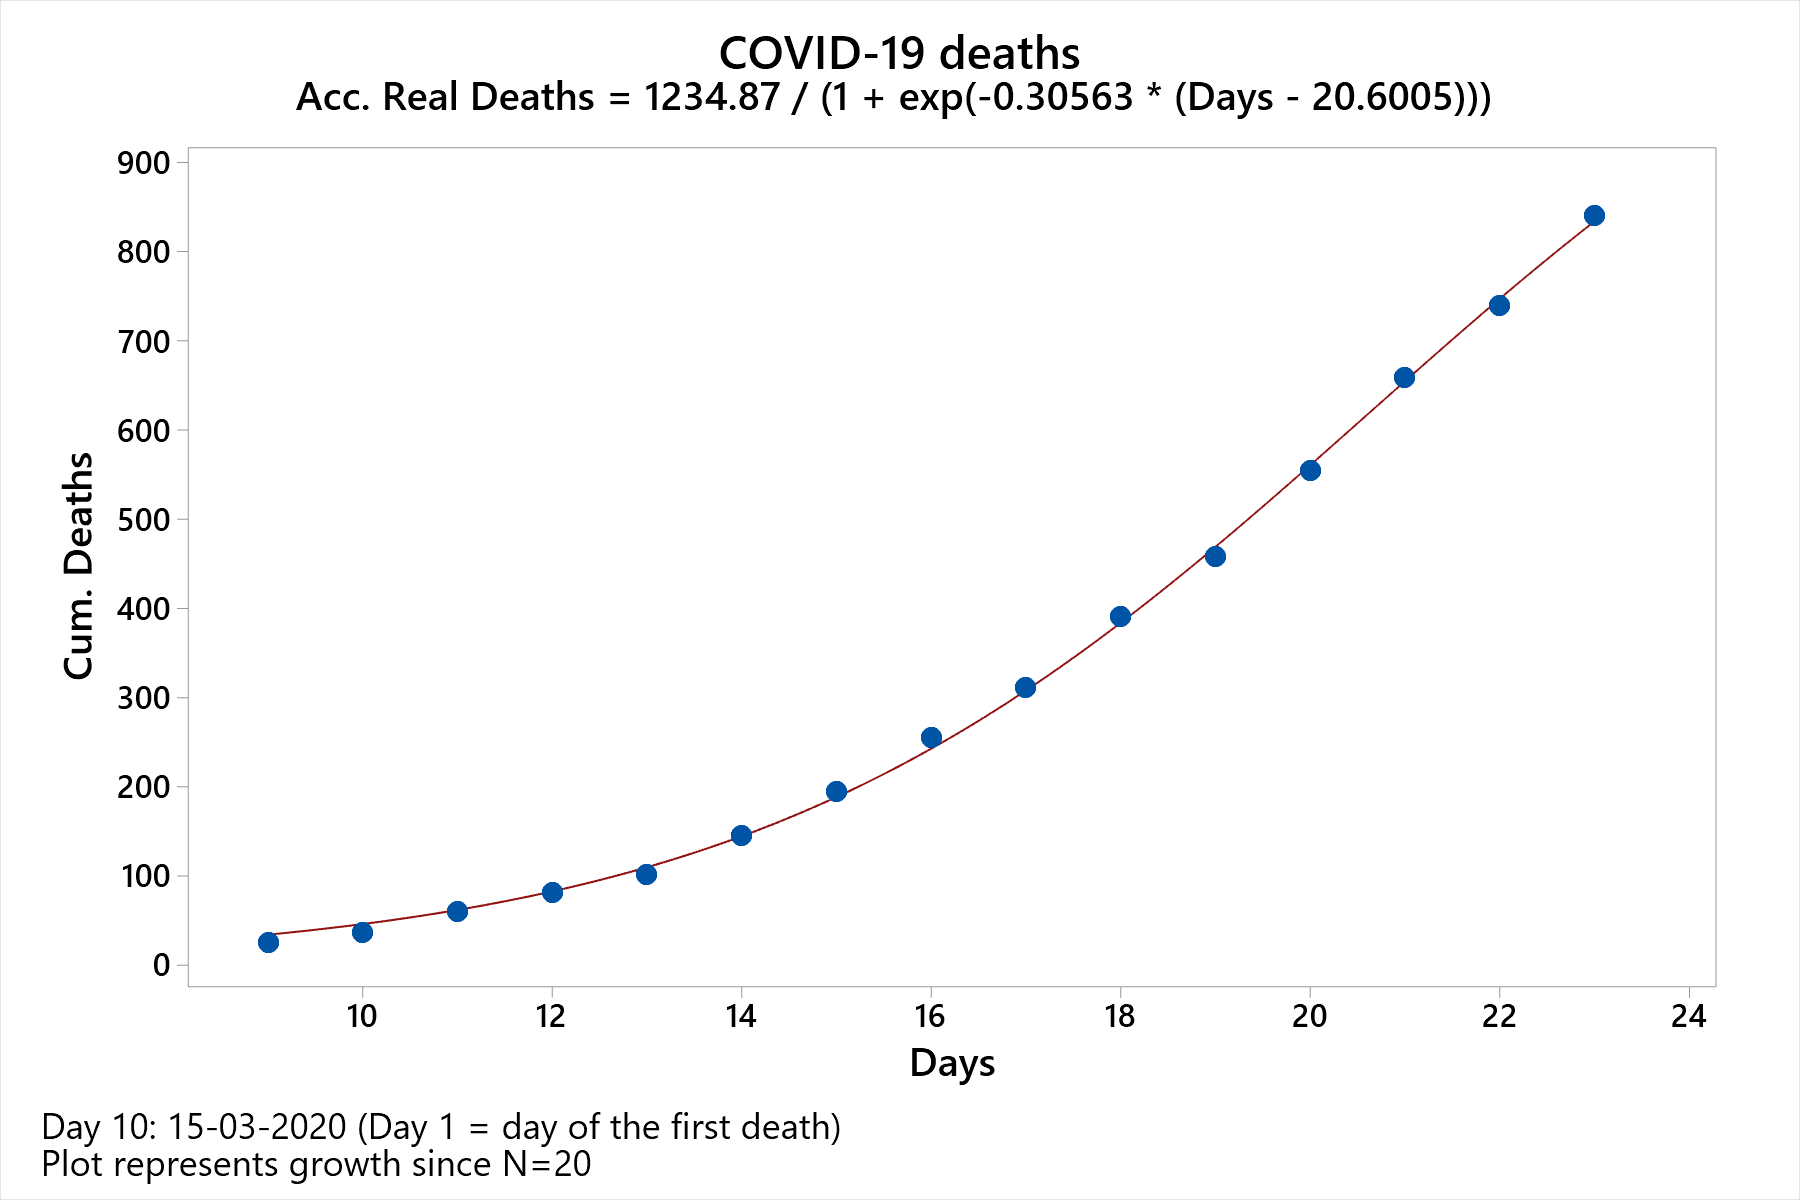 Curve fit of COVID19 deaths in the Netherlands.